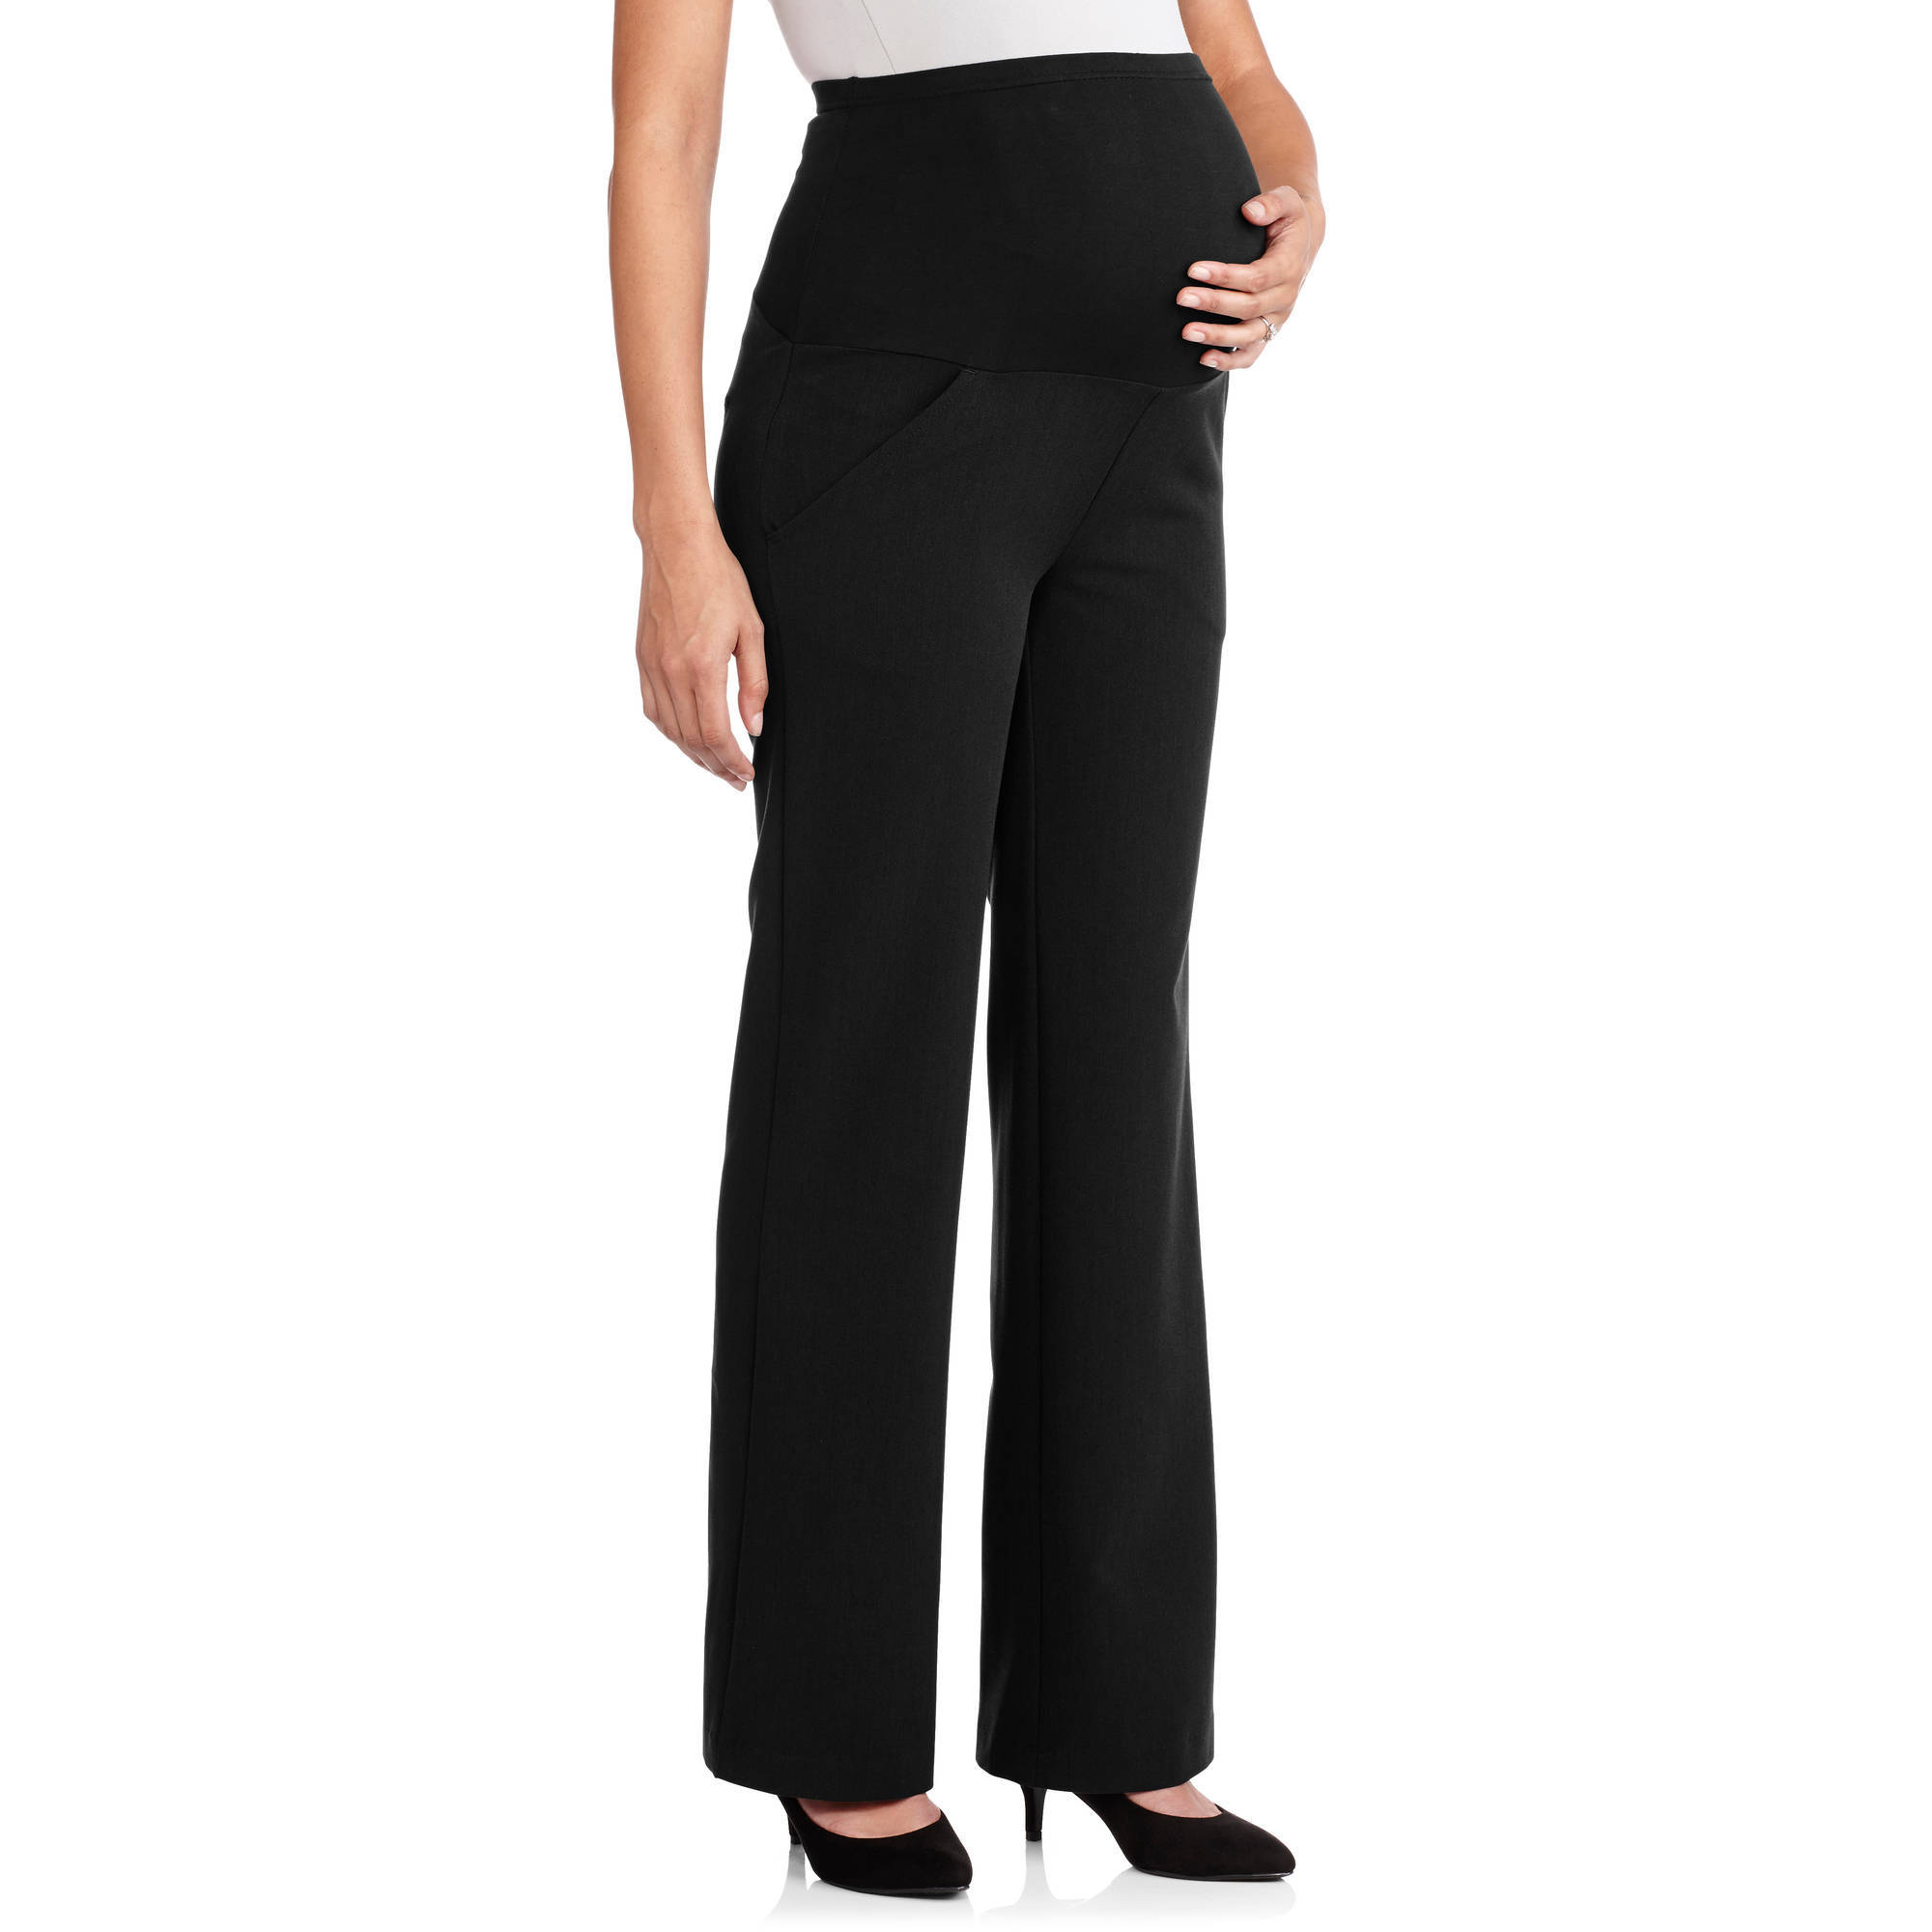 Oh! Mamma Full-Panel Wide Leg Career Maternity Pants - Walmart.com